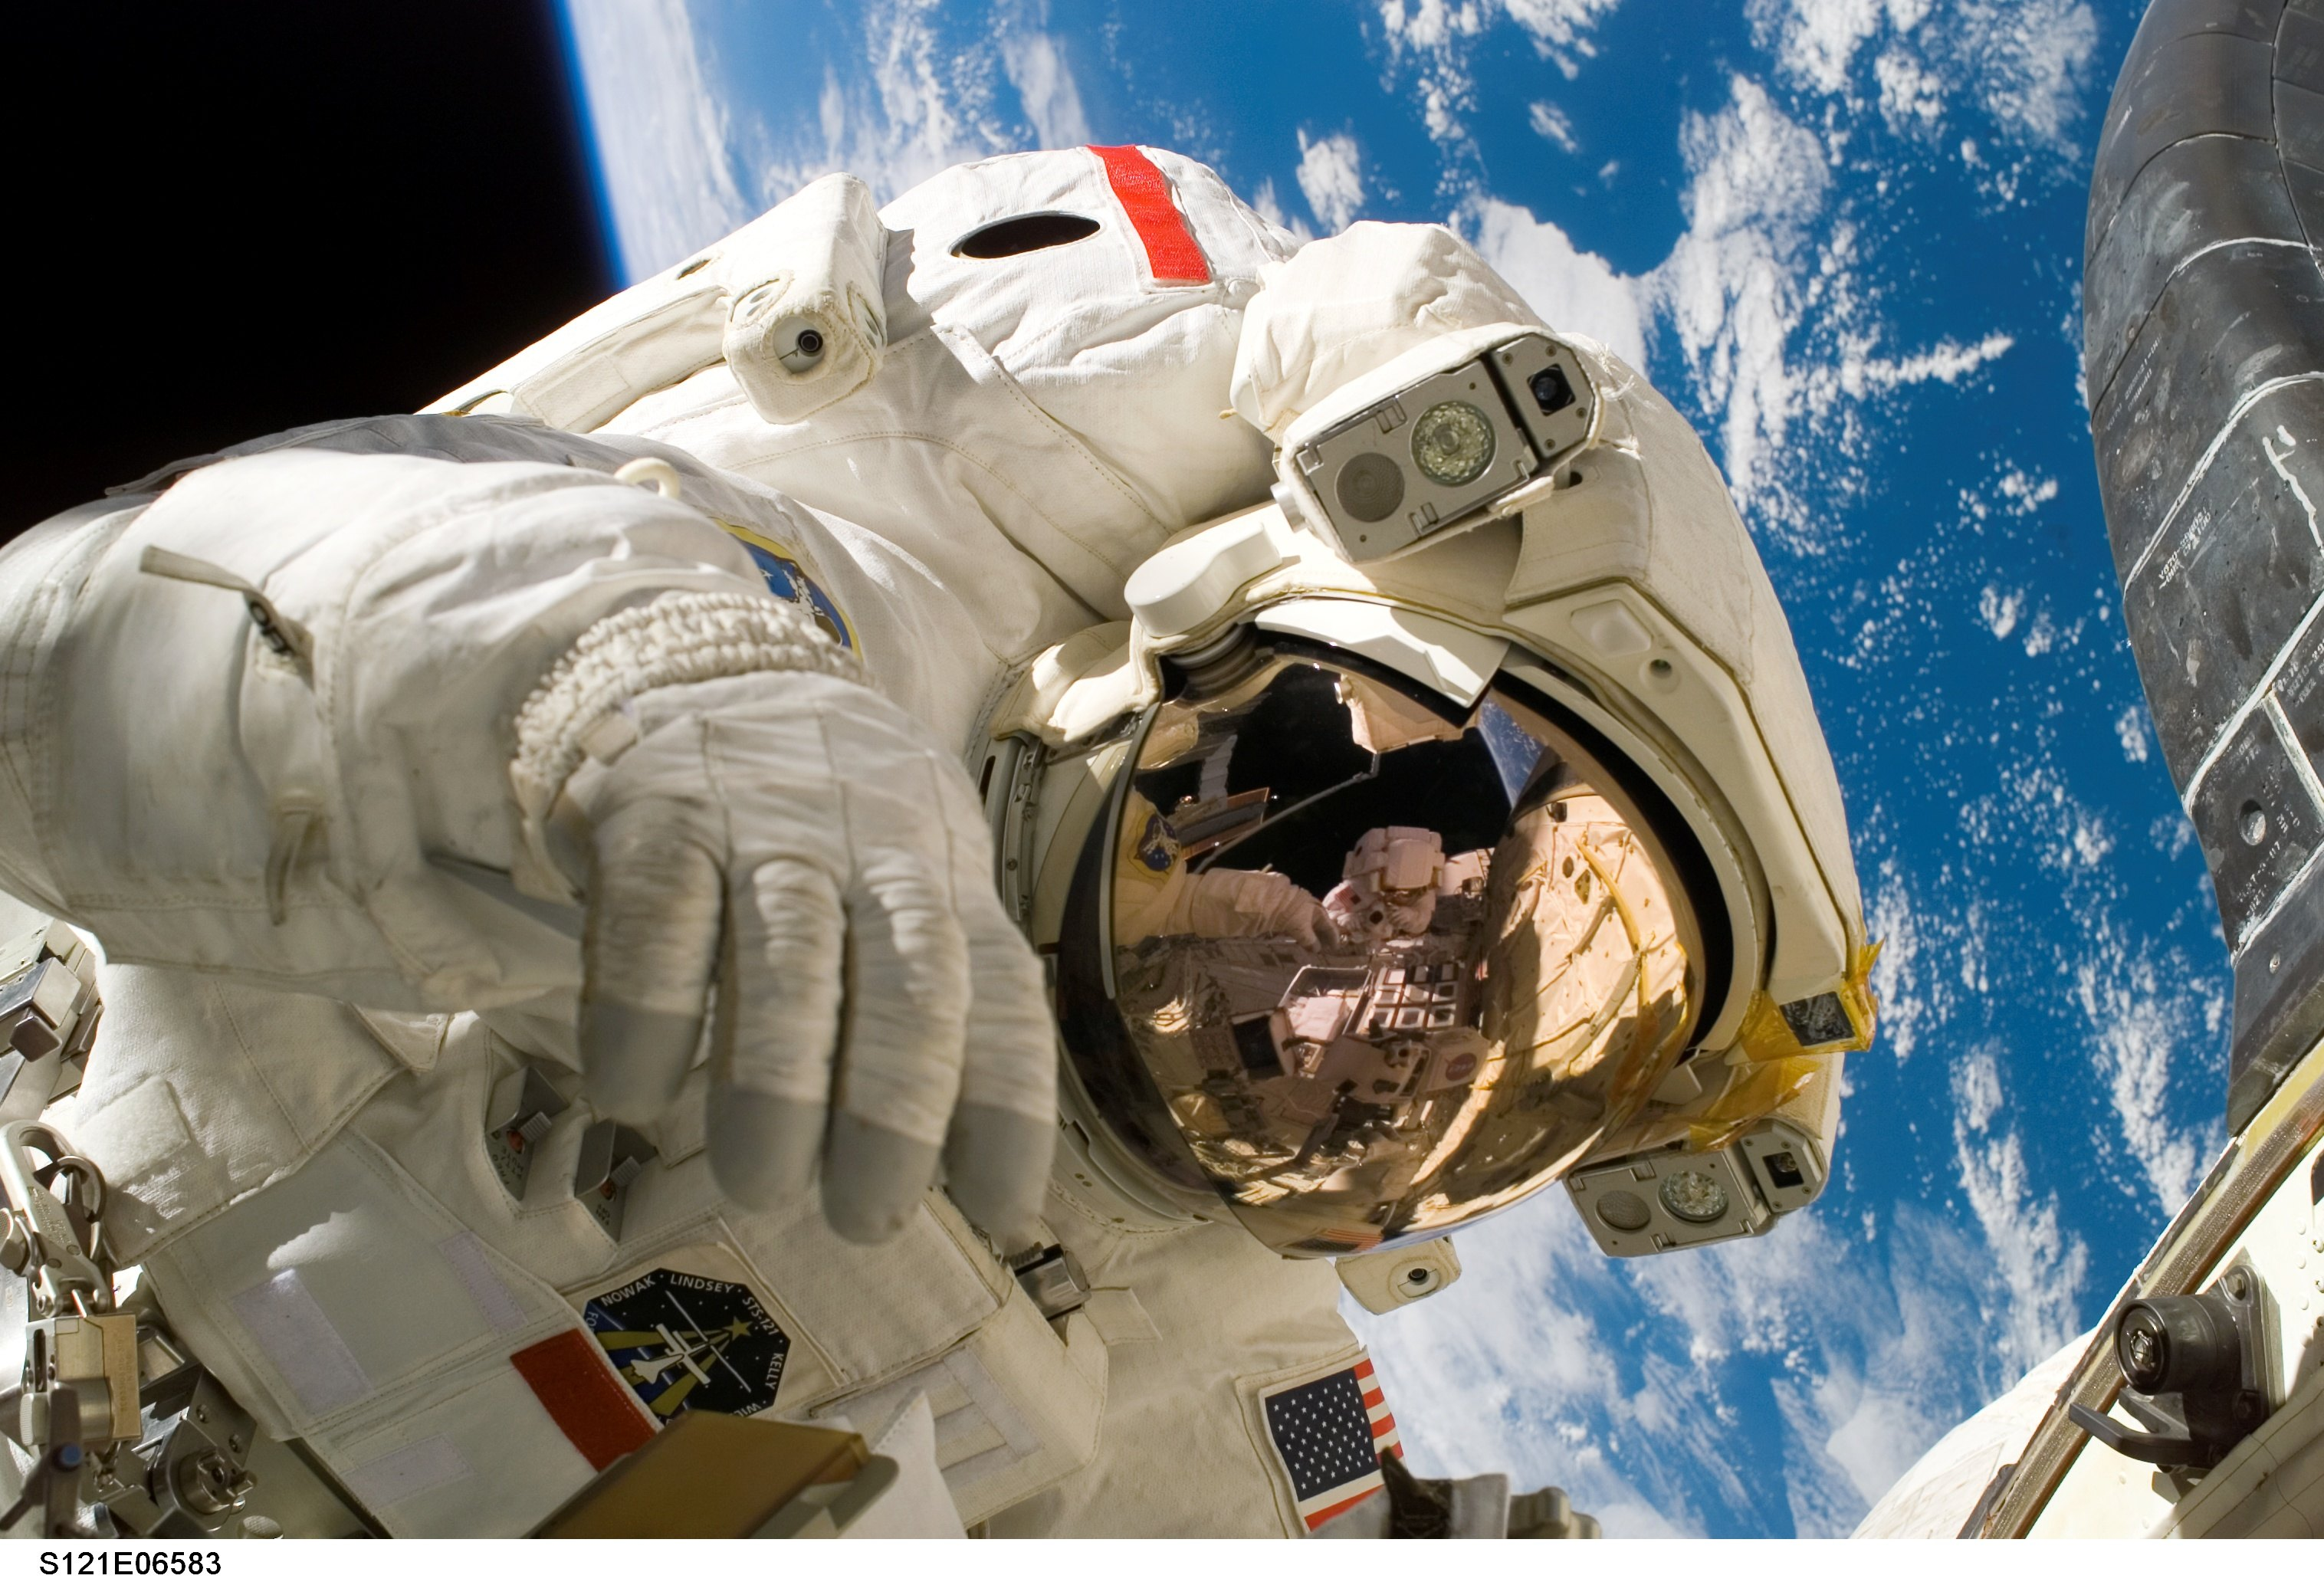 Mission specialist Piers J. Sellers participates in the mission's third and final spacewalk July 13, 2006.